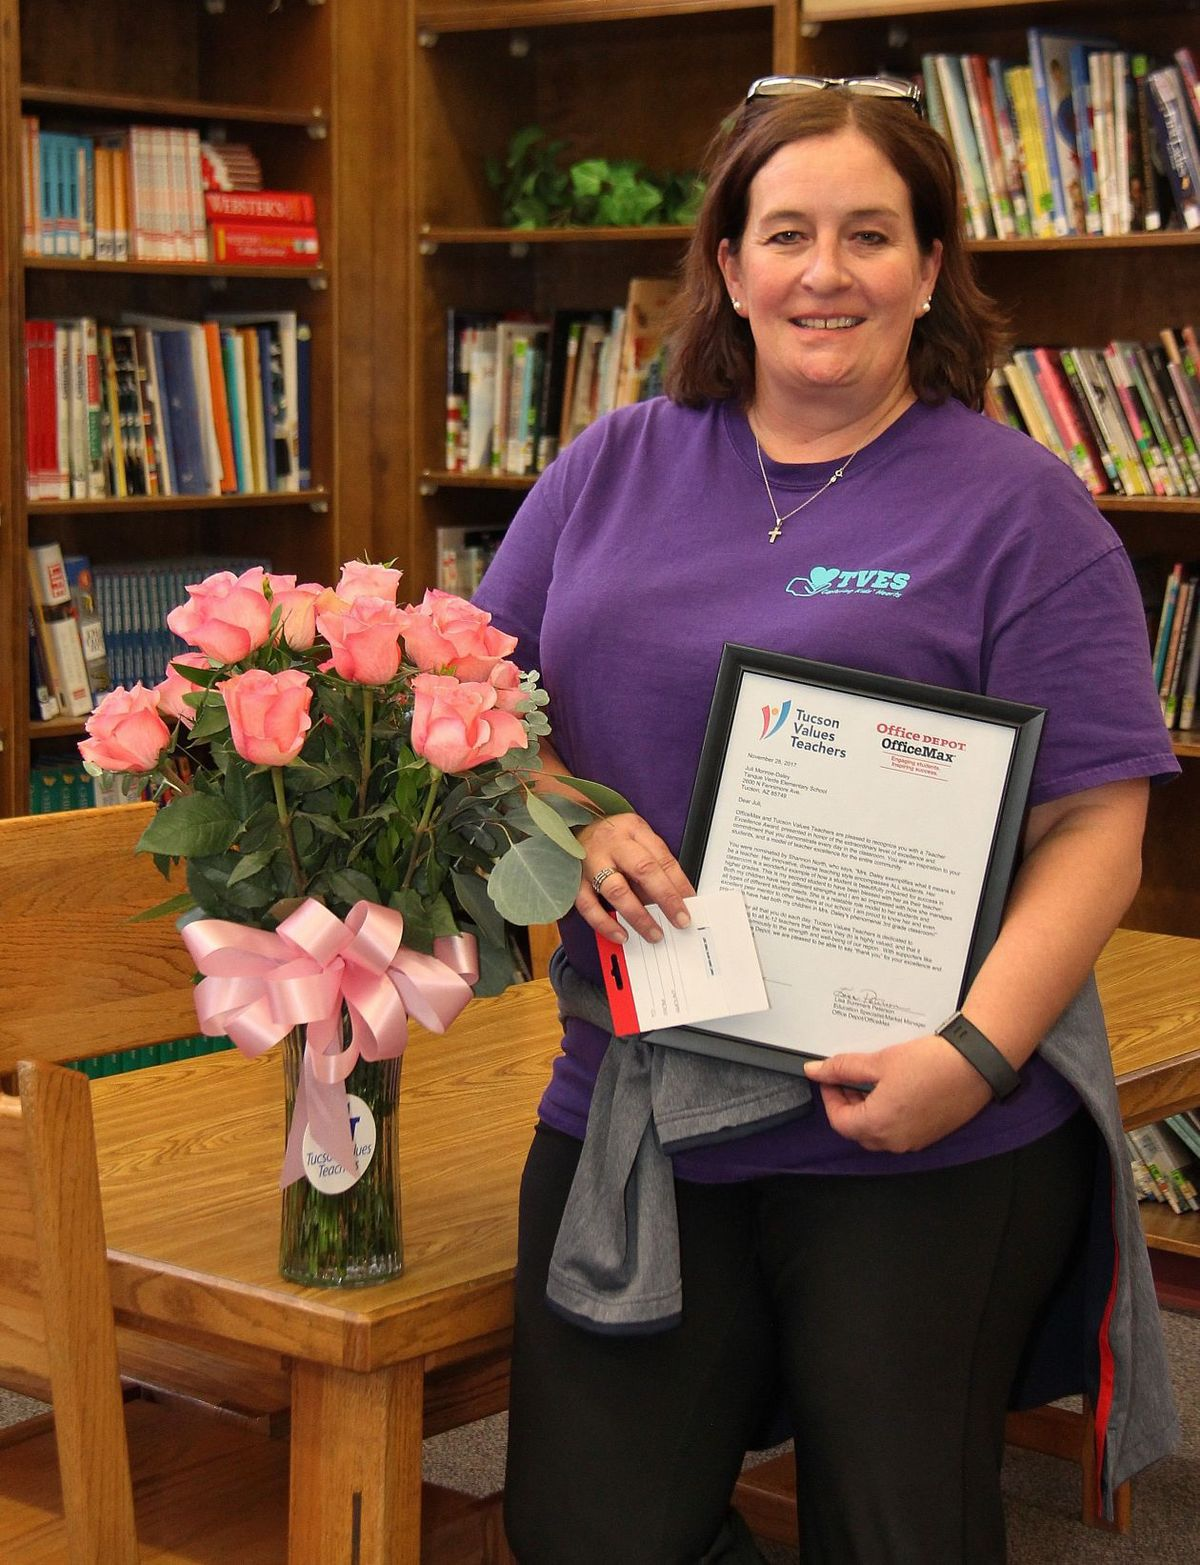 teacher with award and flowers